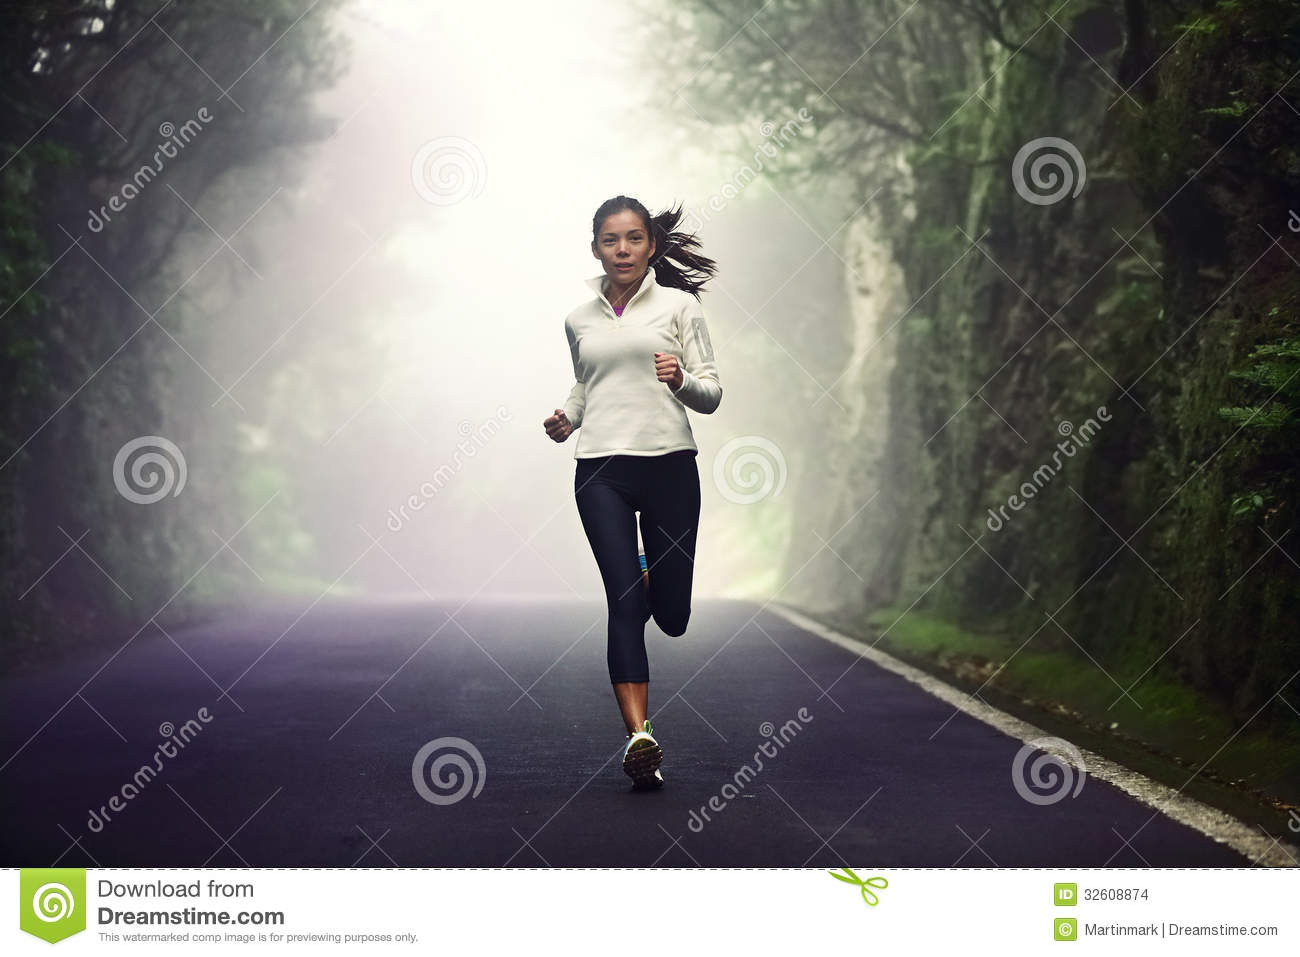 Woman Jogging On Gravel Mountain Road Stock Photo | Getty Images